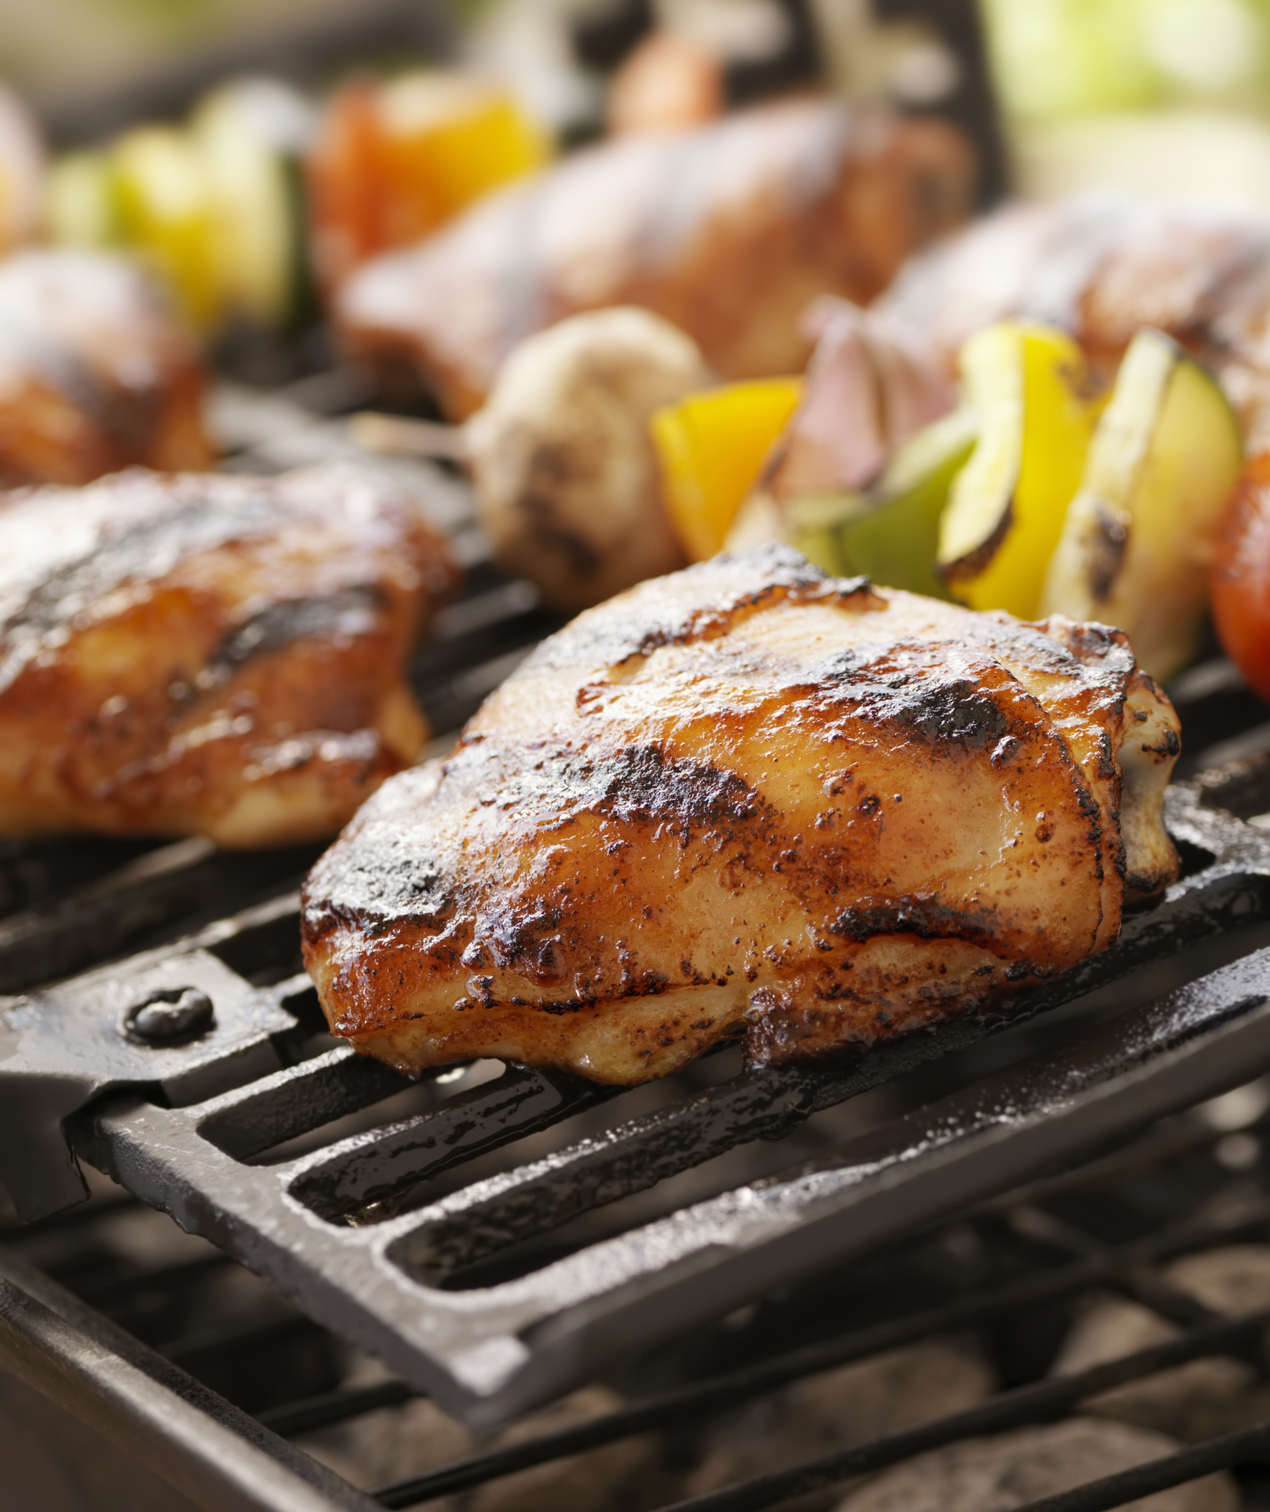 Chicken thighs and kebabs on grill